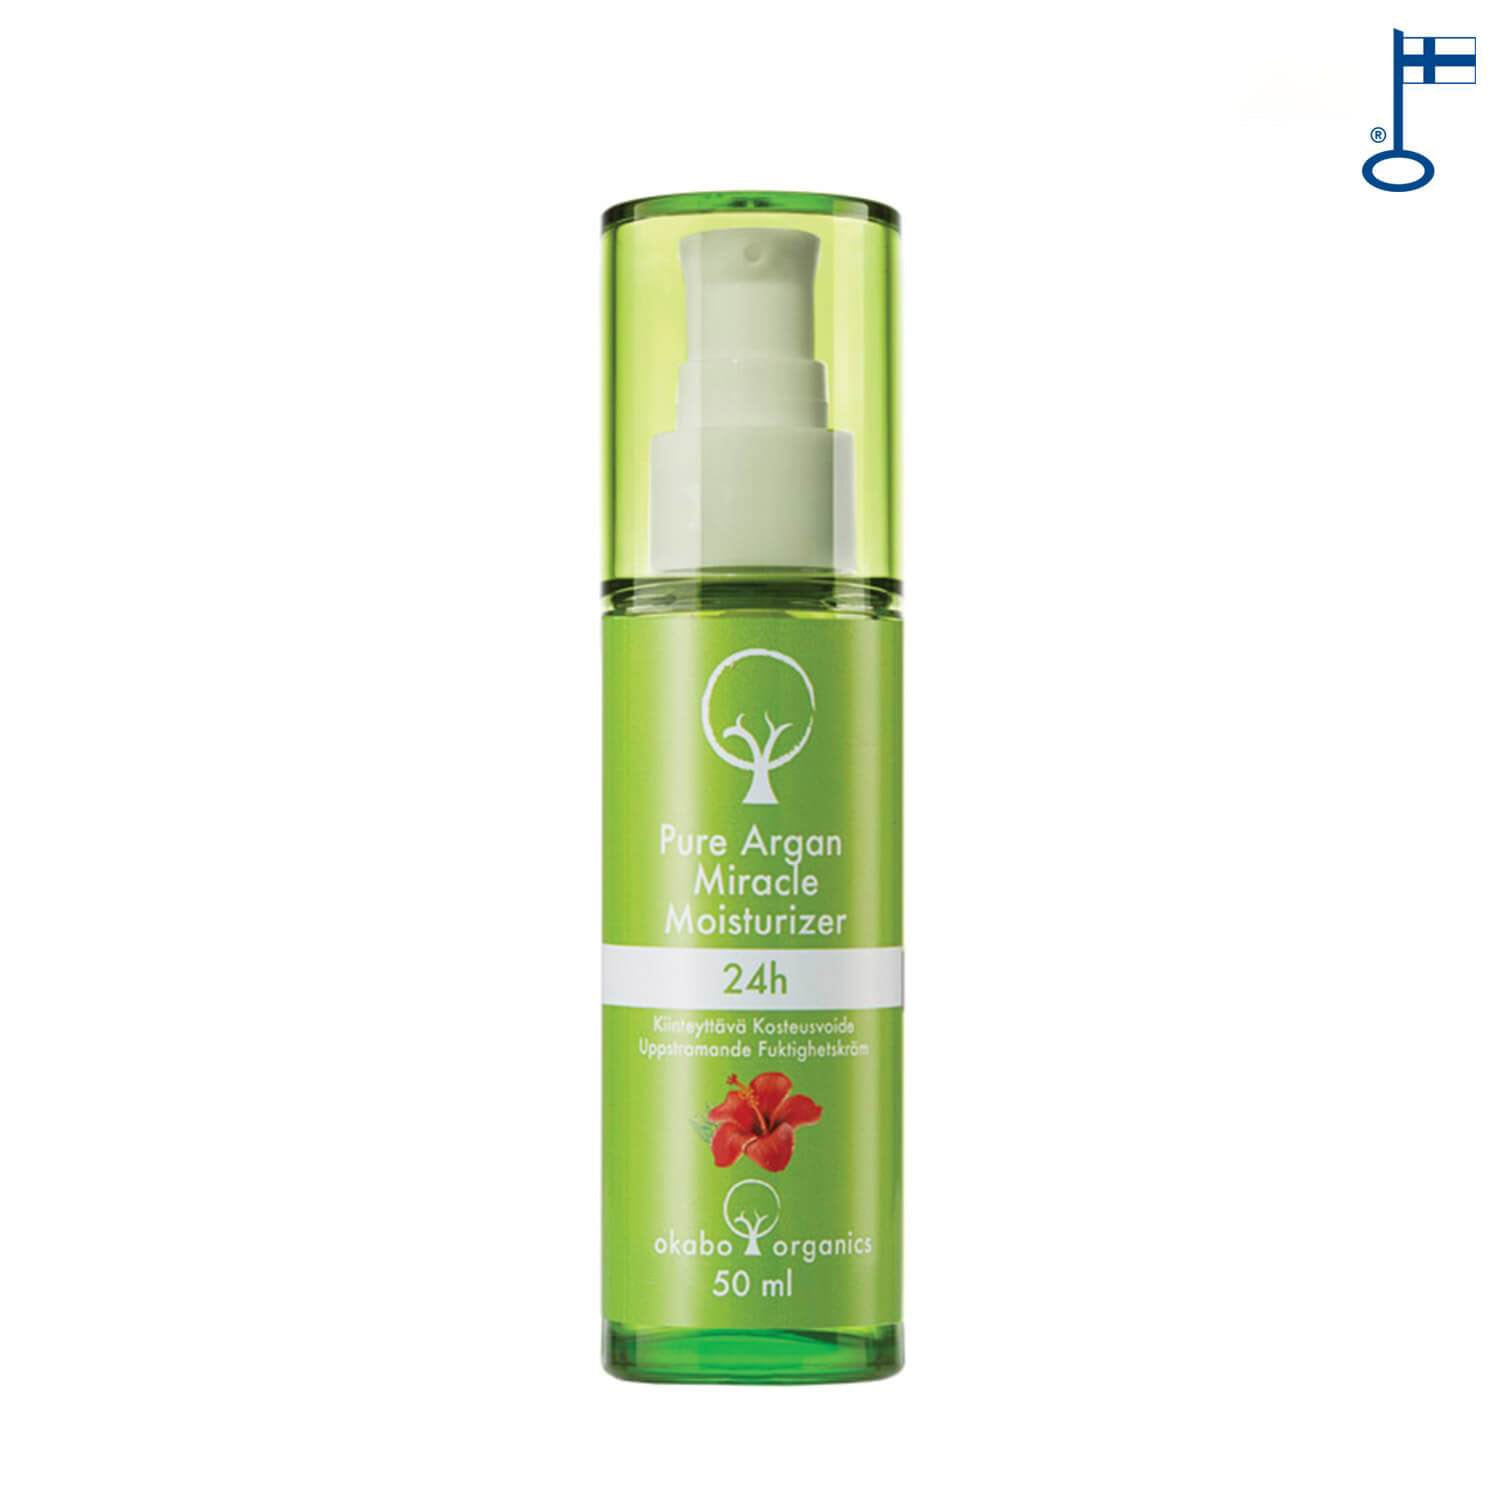 24H Miracle Moisturizer, 50 ml